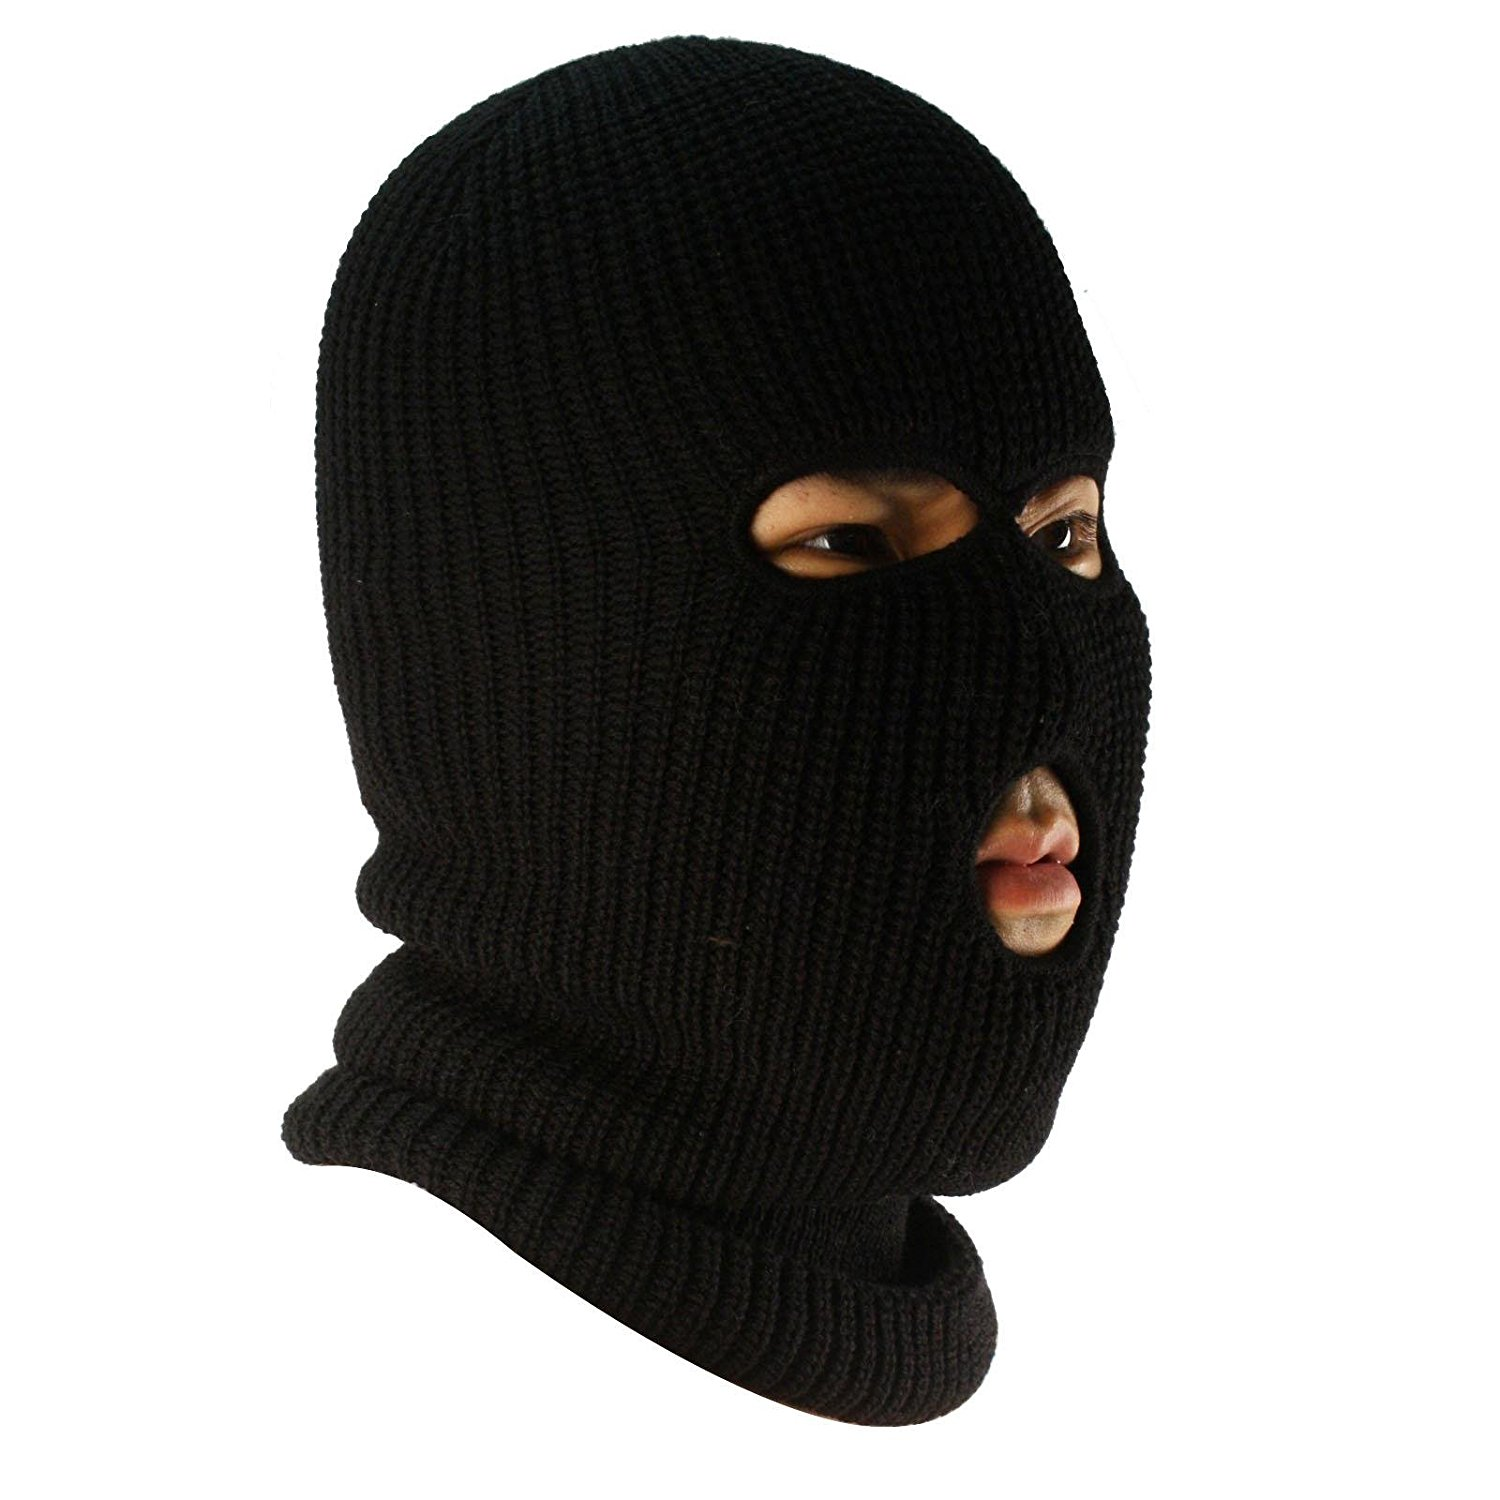 Cheap Hole Ski Mask, find Hole Ski Mask deals on line at Alibaba.com